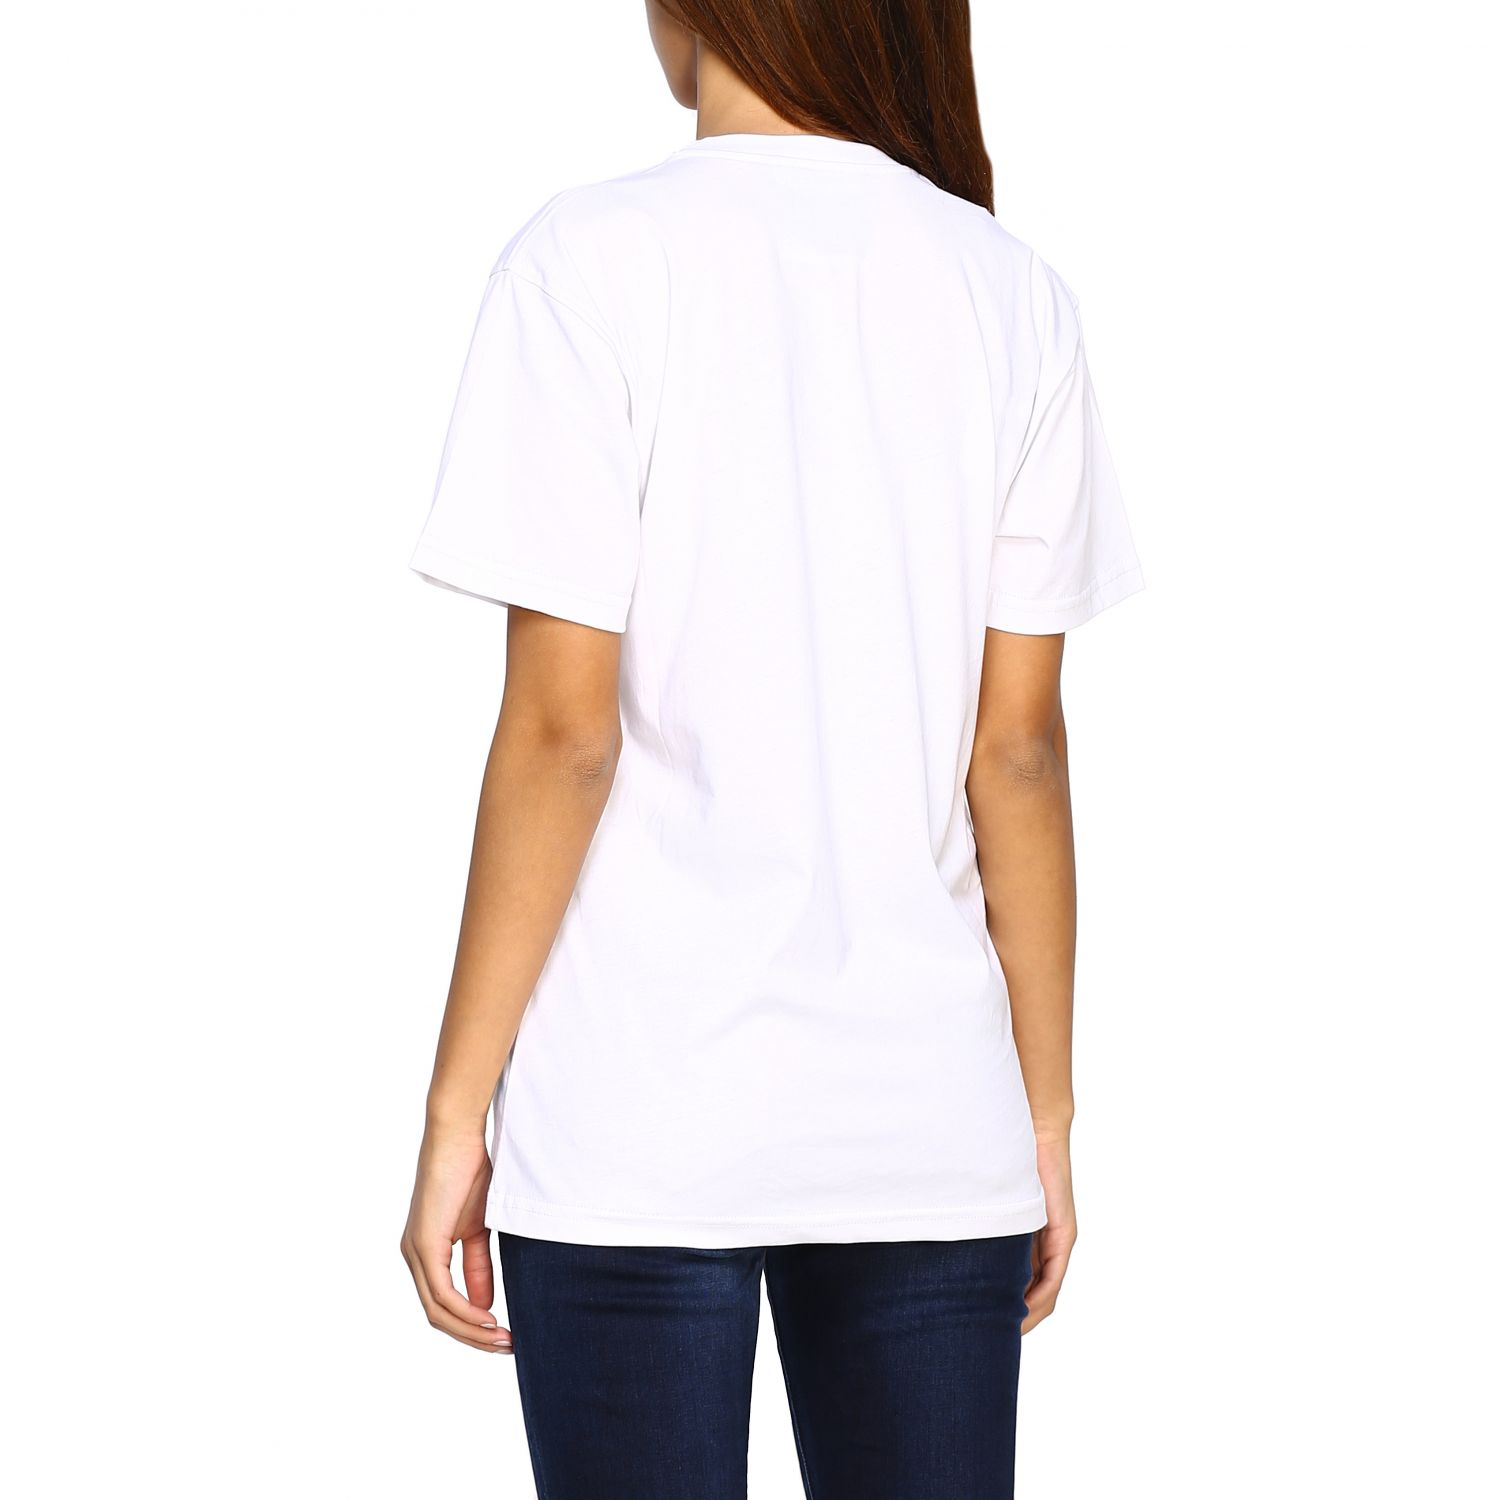 T-shirt Capsule Collection Moschino X Budweiser in jersey di cotone bianco 3